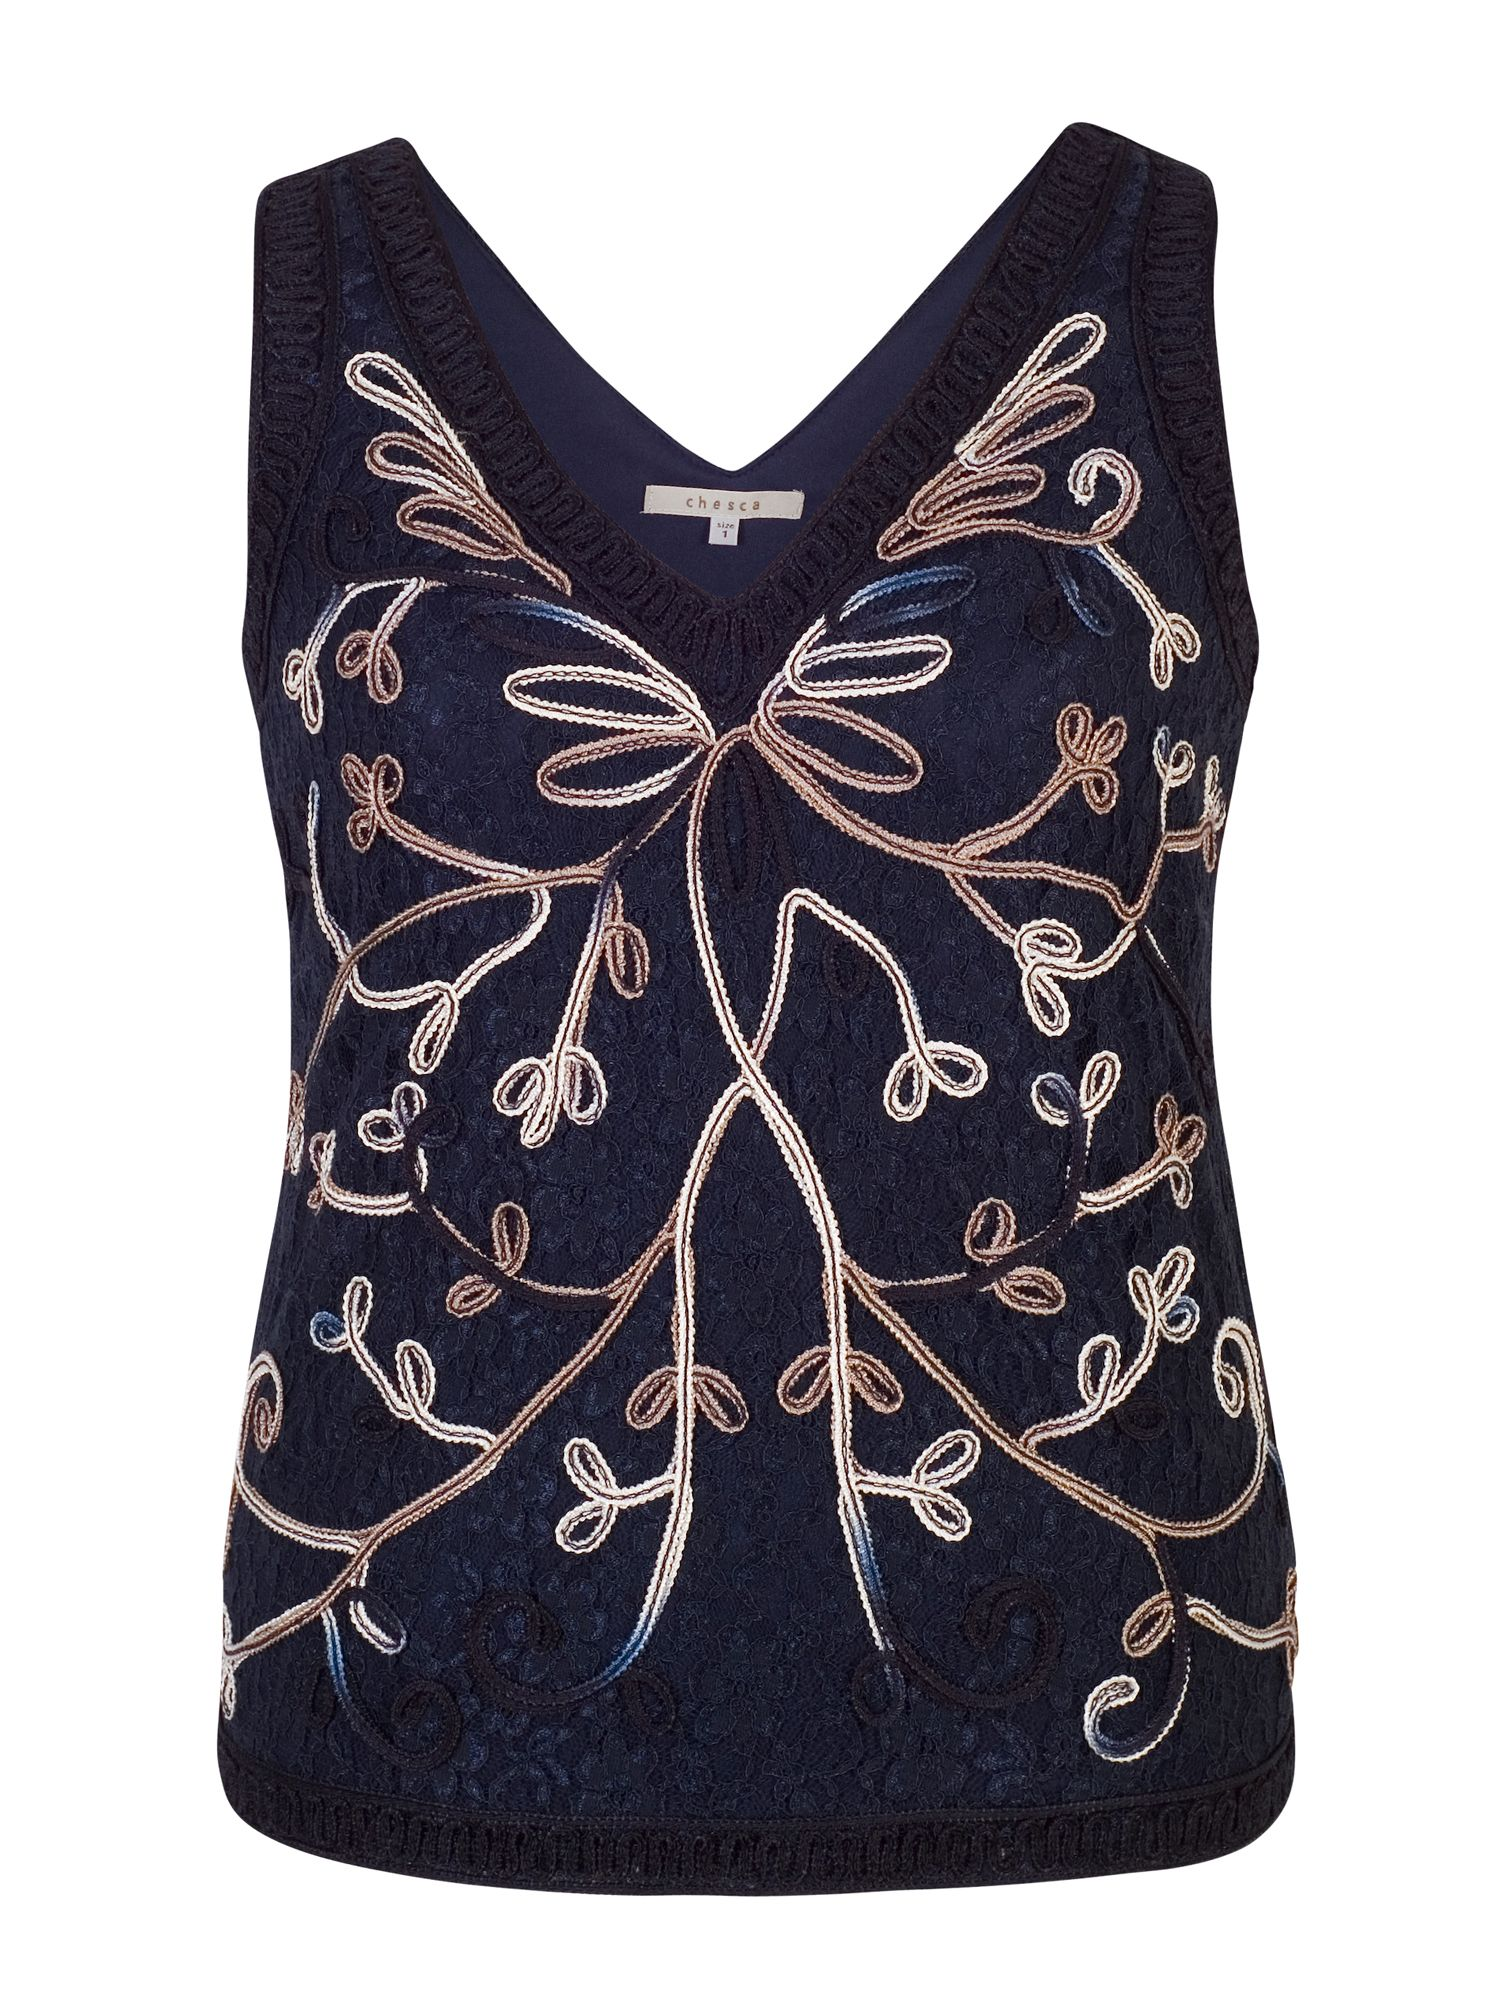 Chesca Ombre Cornelli Embroidered Lace Camisole, Blue